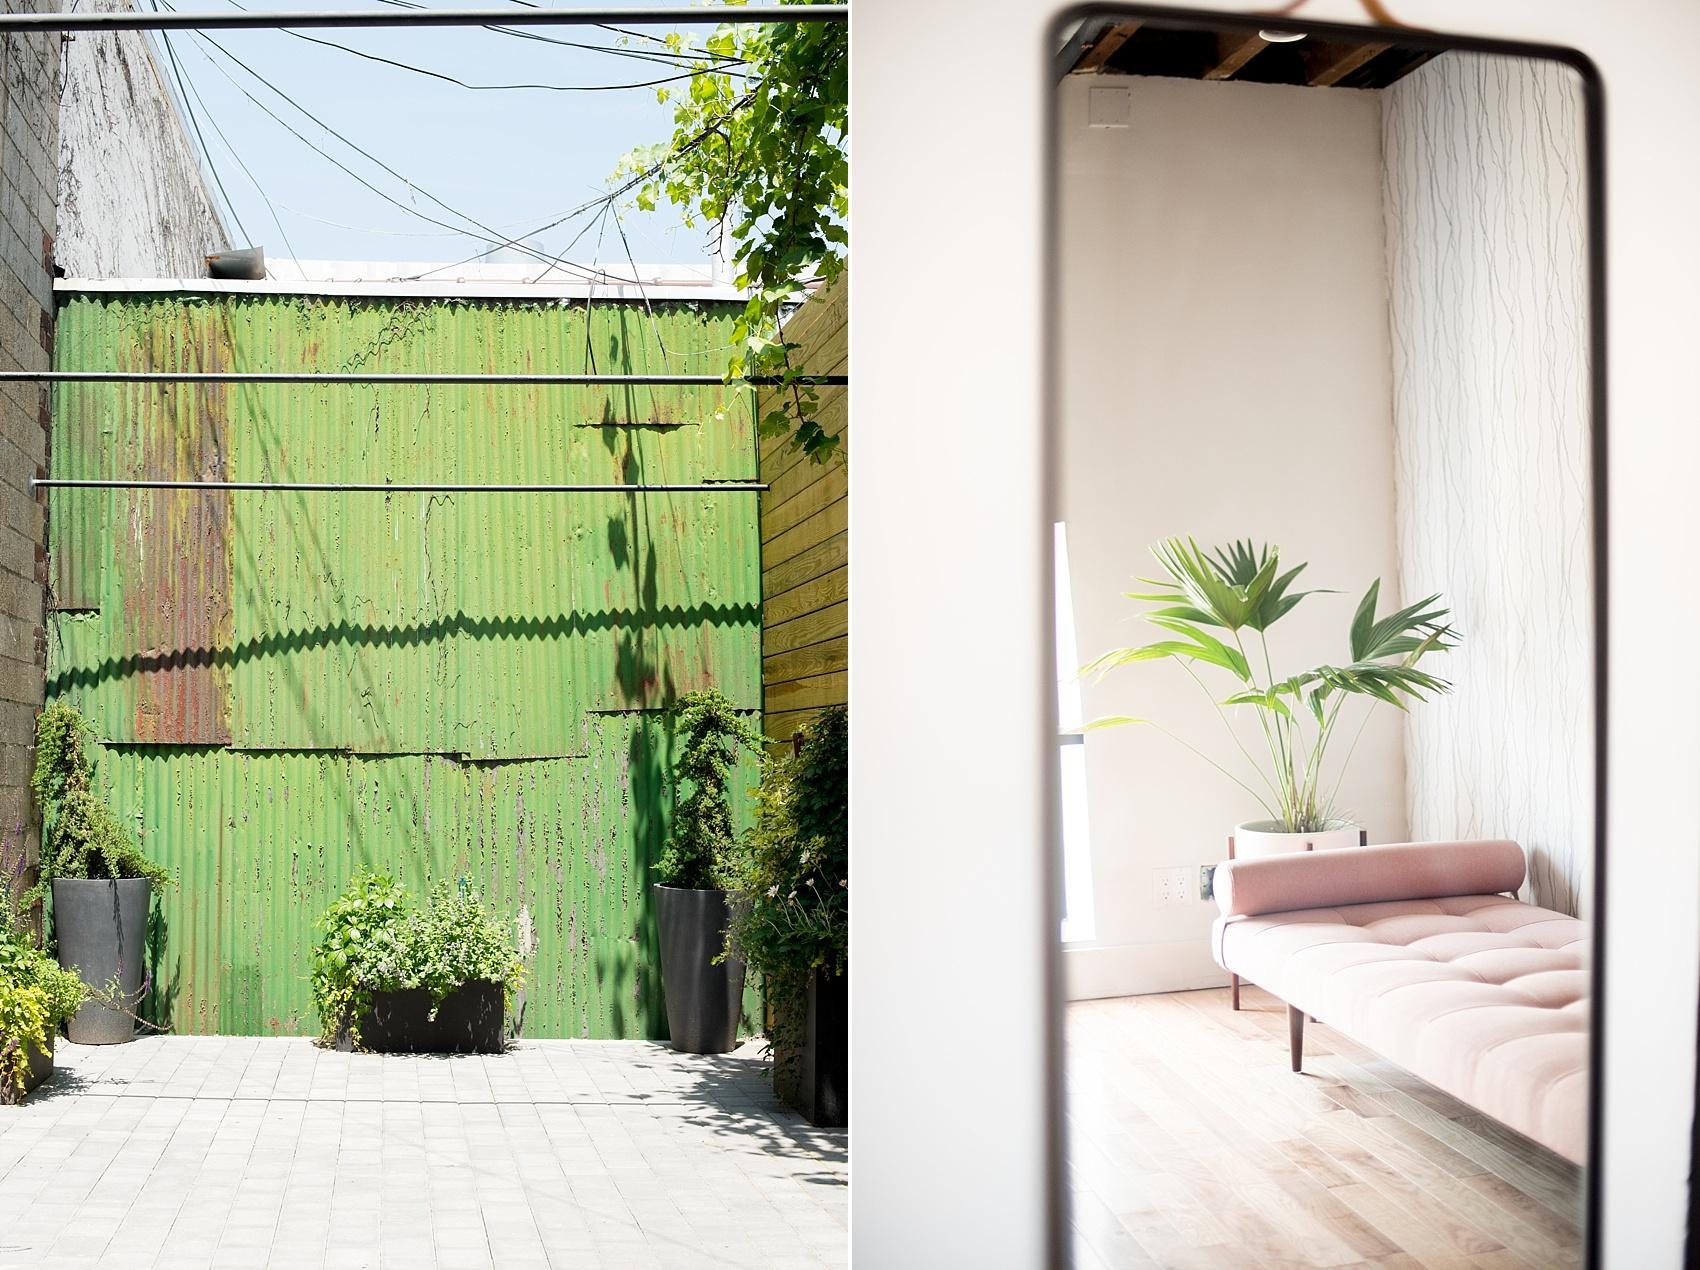 Mikkel Paige Photography, NYC wedding photographer, captures Brooklyn event space, Dobbin St. with outdoor garden patio and interior trendy modern suite.